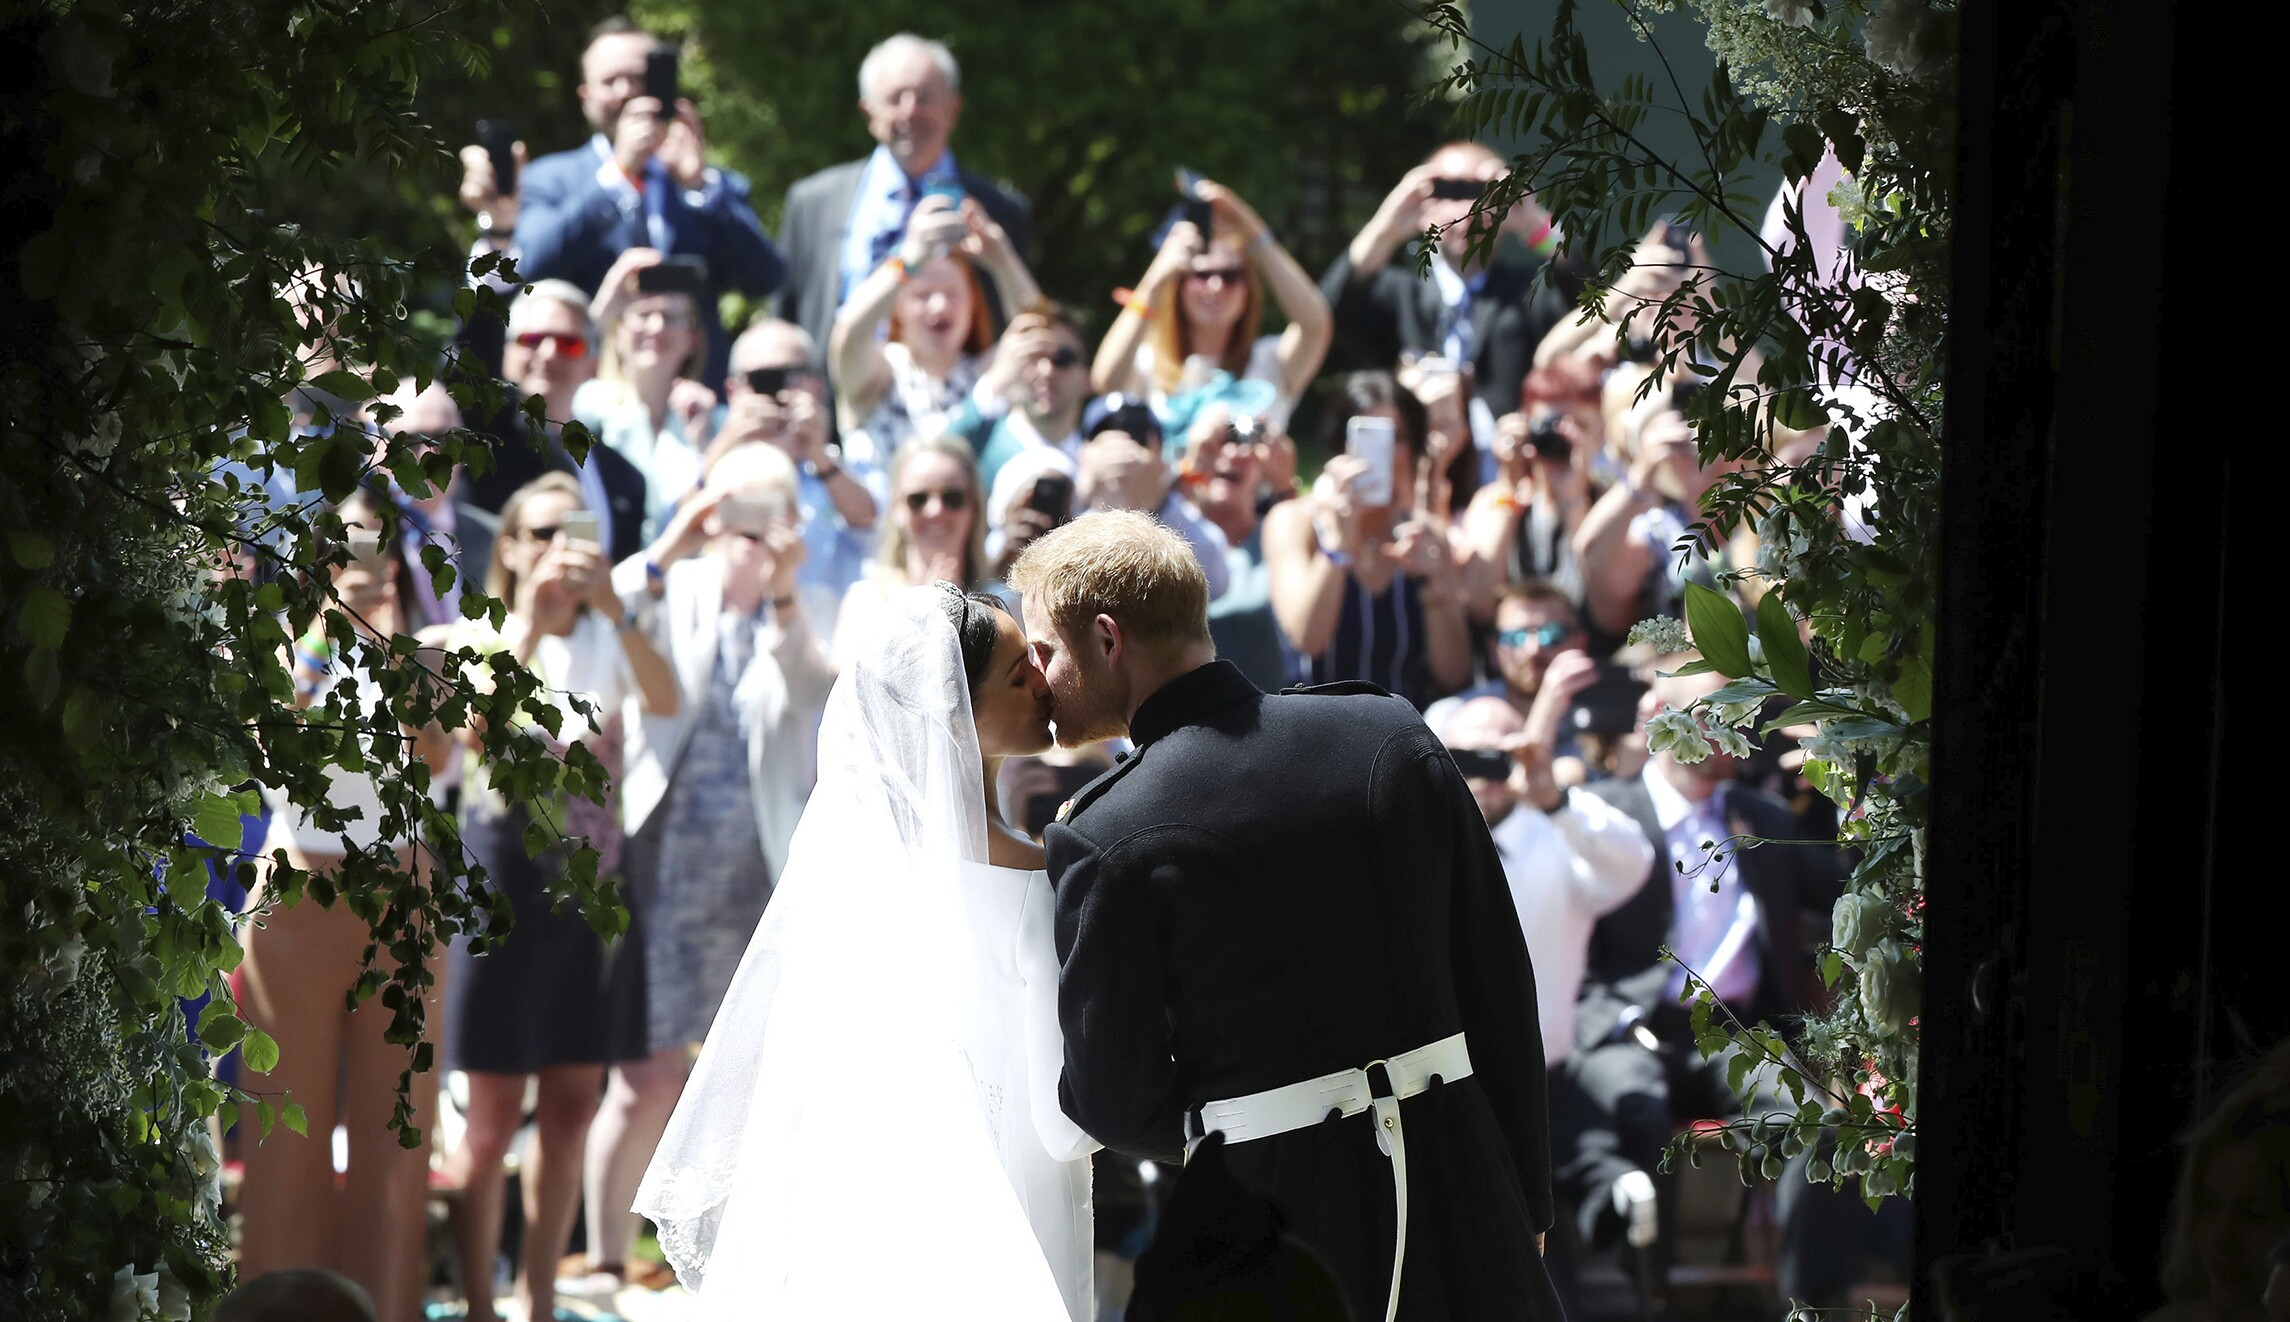 Pictures Of The Royal Wedding.Bbc Trolls Trump Over Crowd Size In Royal Wedding Tweet